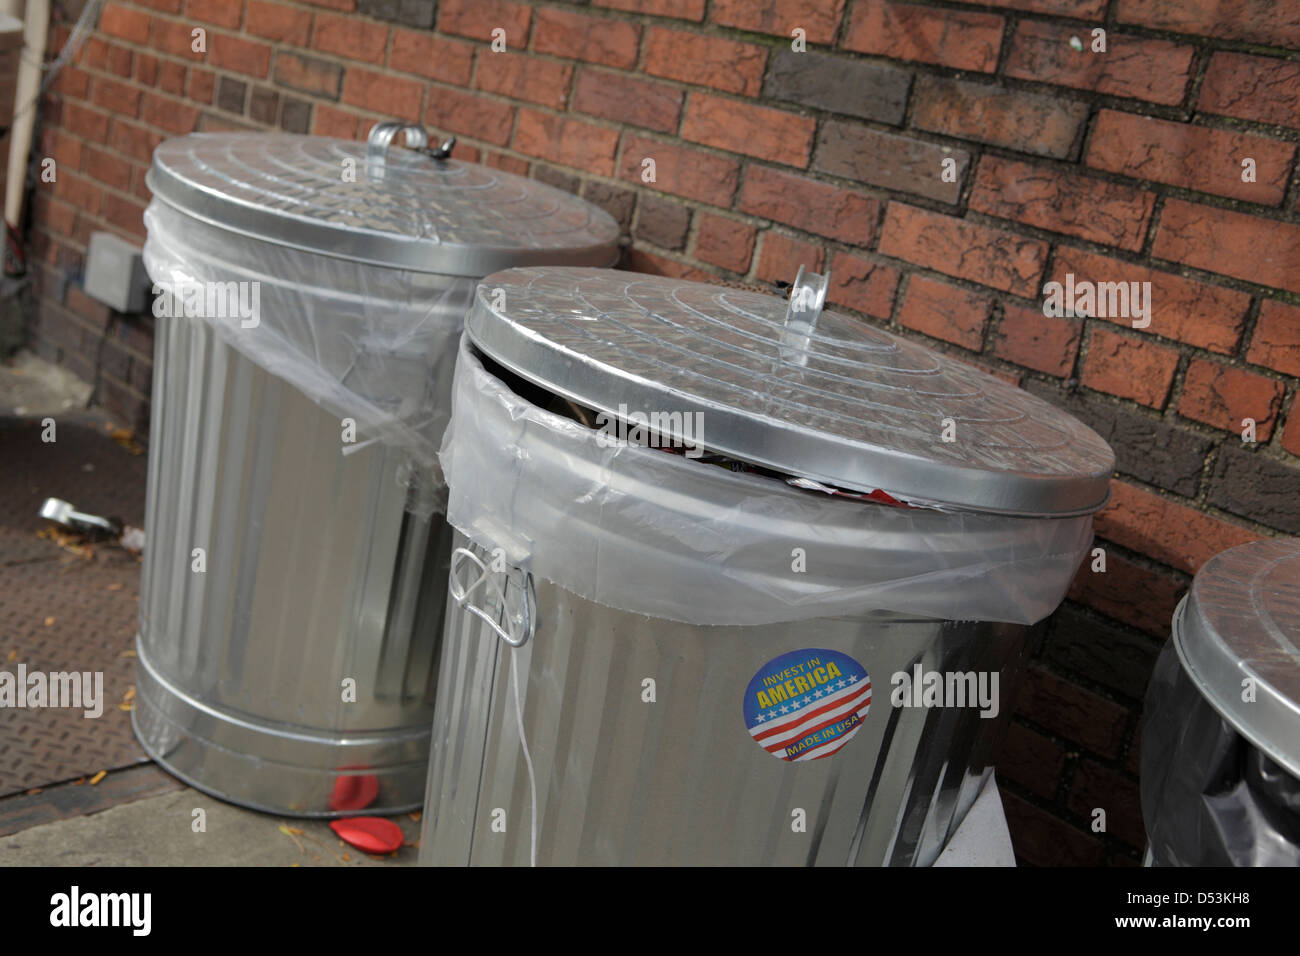 metal garbage cans - Stock Image